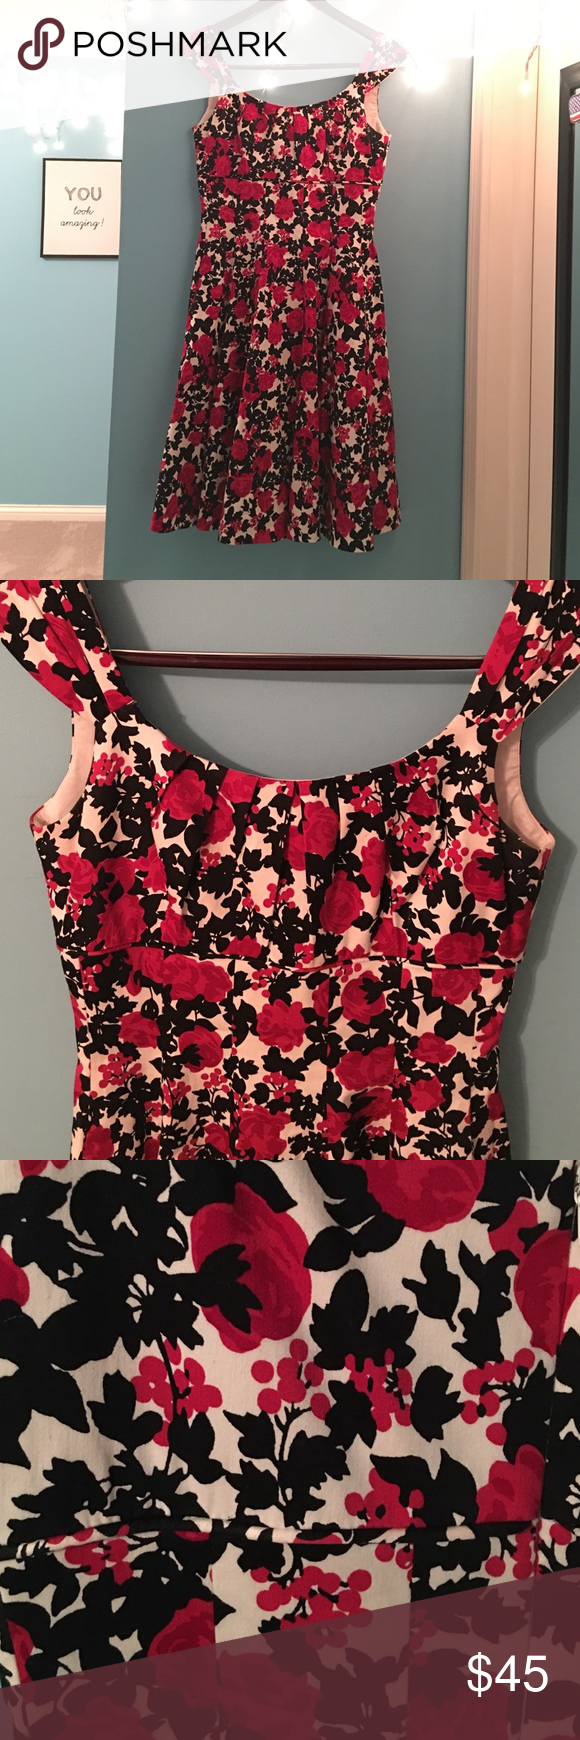 White House Black Market floral dress Beautiful black, red and white floral print dress. Pleated at bust line and pleated skirt with a flattering empire waist. Zipper in the back. Very flattering silhouette. White House Black Market Dresses Midi